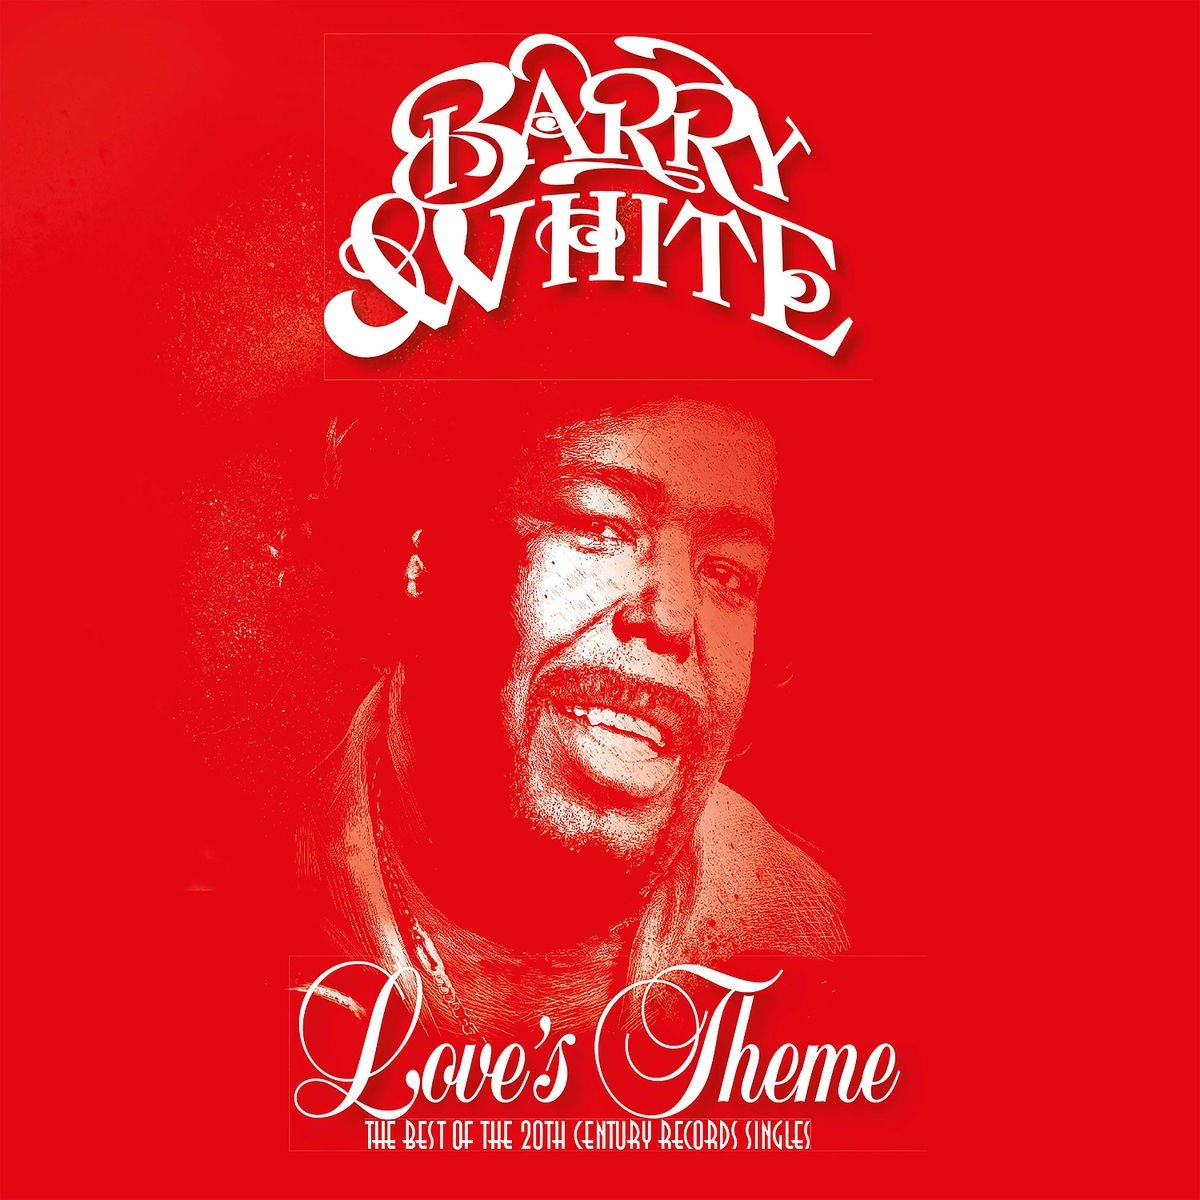 Barry White - CD Love's Theme (The Best Of The 20th Century Records Singles)